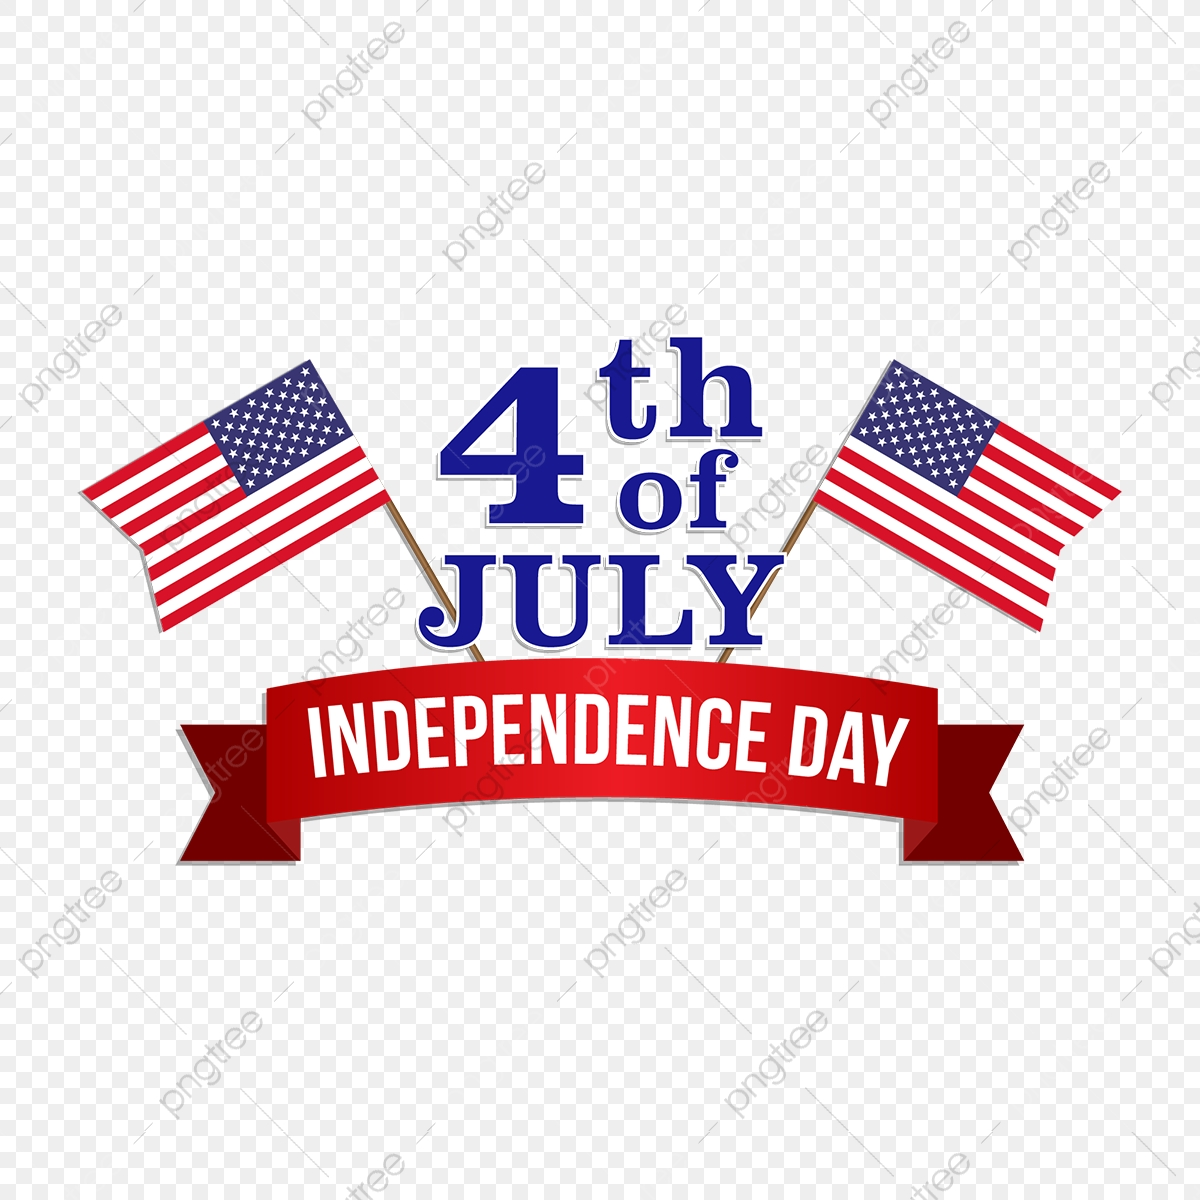 American Independence Day Png - American Flag Independence Day, Background, Travel, Flag PNG and ...